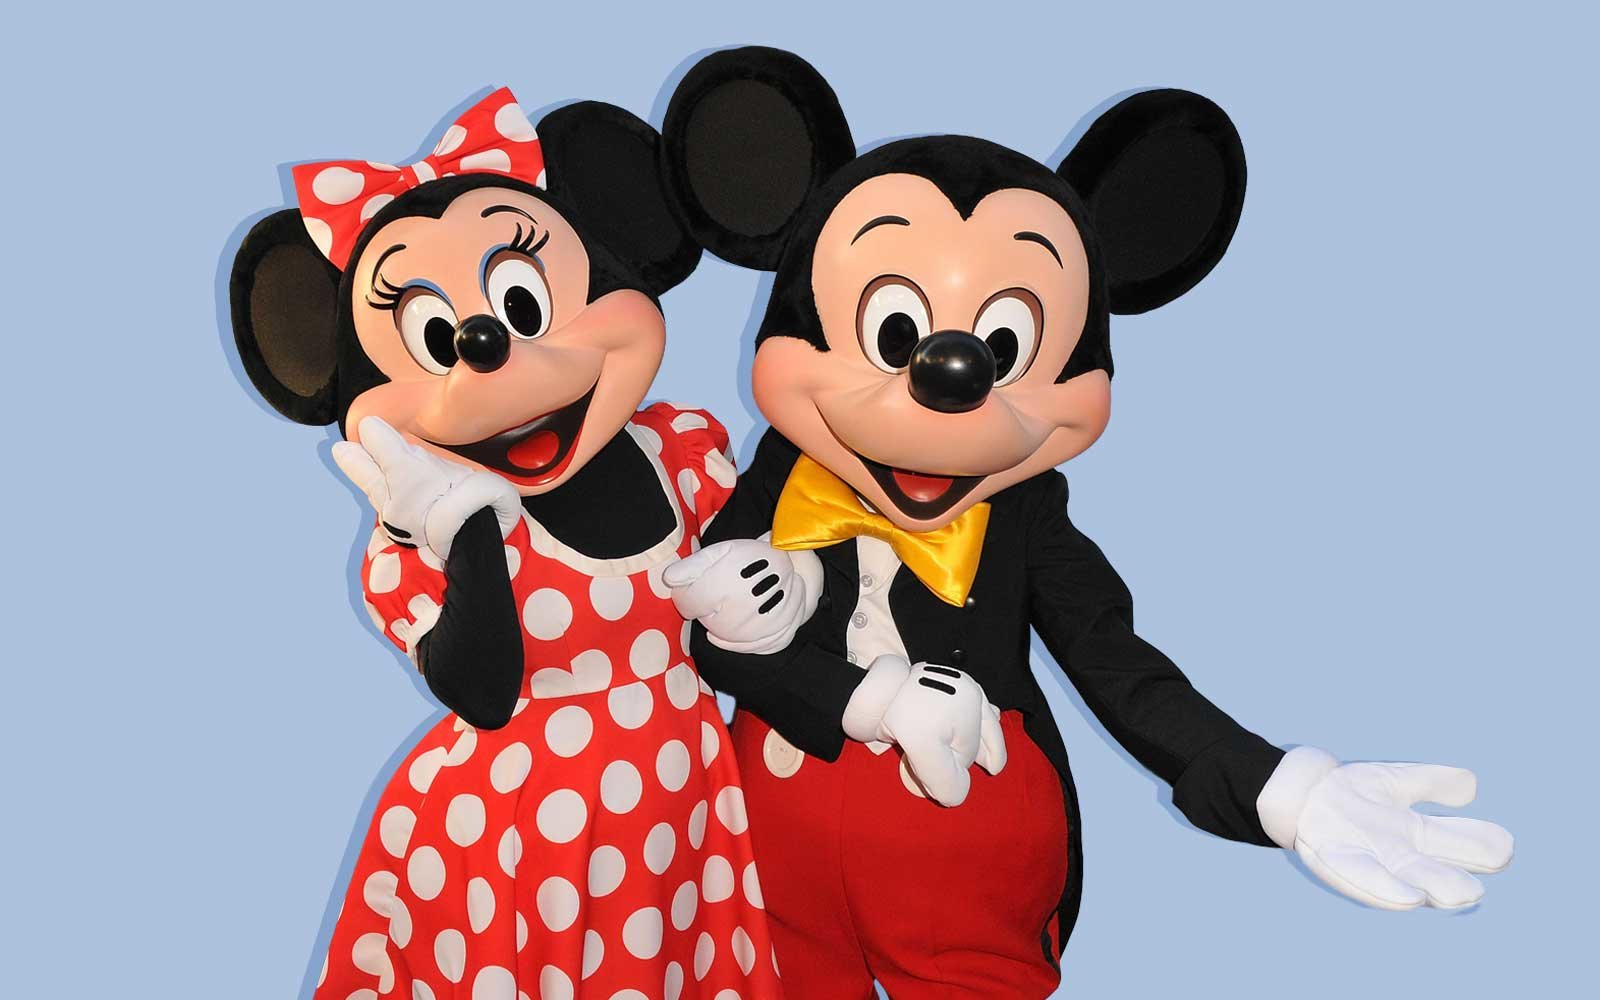 To link your race photos to your Disney account, log in at exsanew-49rs8091.ga, select